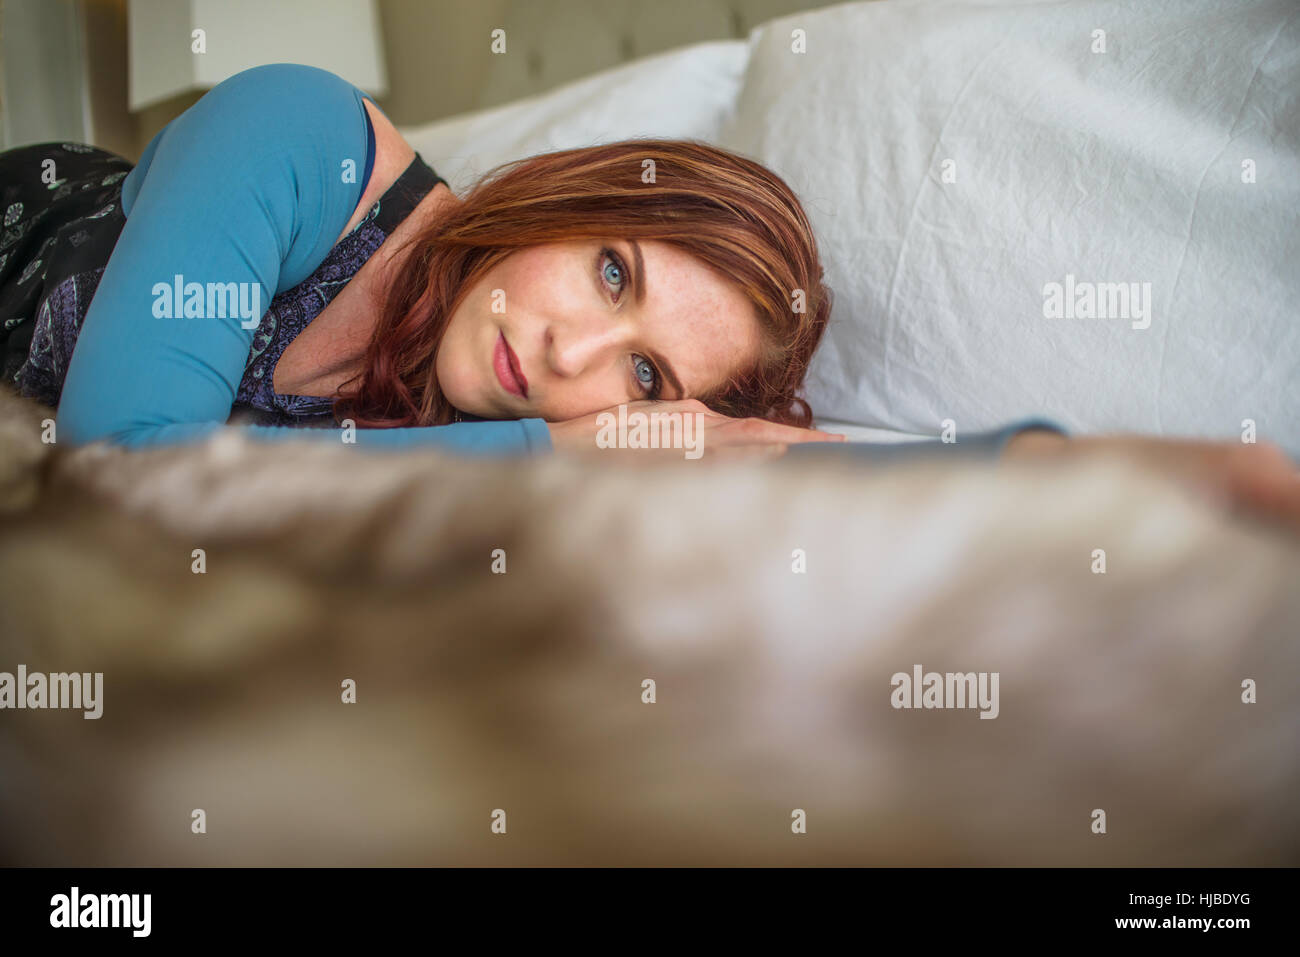 Woman lying in bed - Stock Image